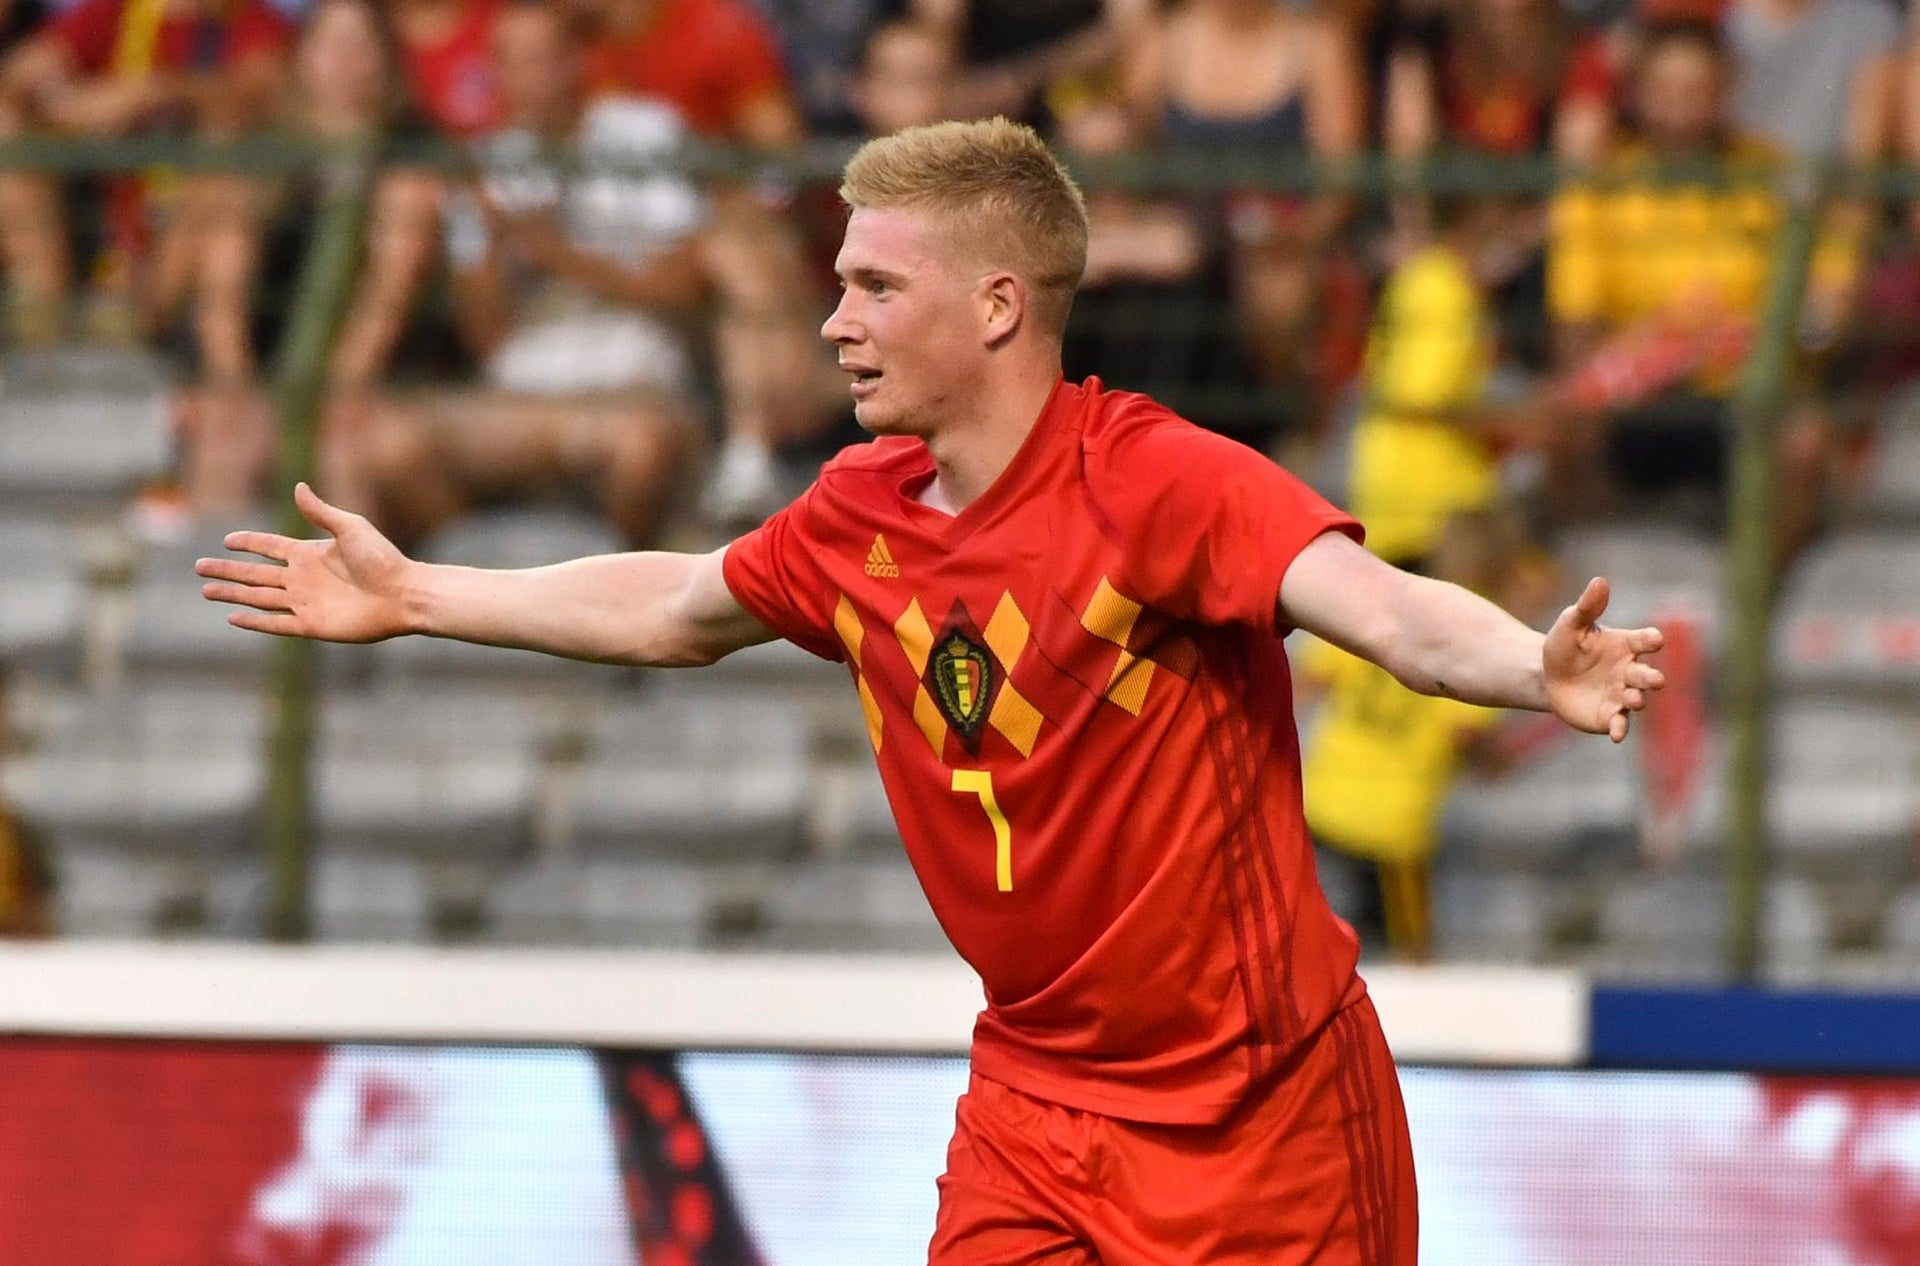 Belgium's Kevin De Bruyne reacts after a call during a friendly soccer match between Belgium and Egypt at the King Baudouin stadium in Brussels, Wednesday, June 6, 2018.